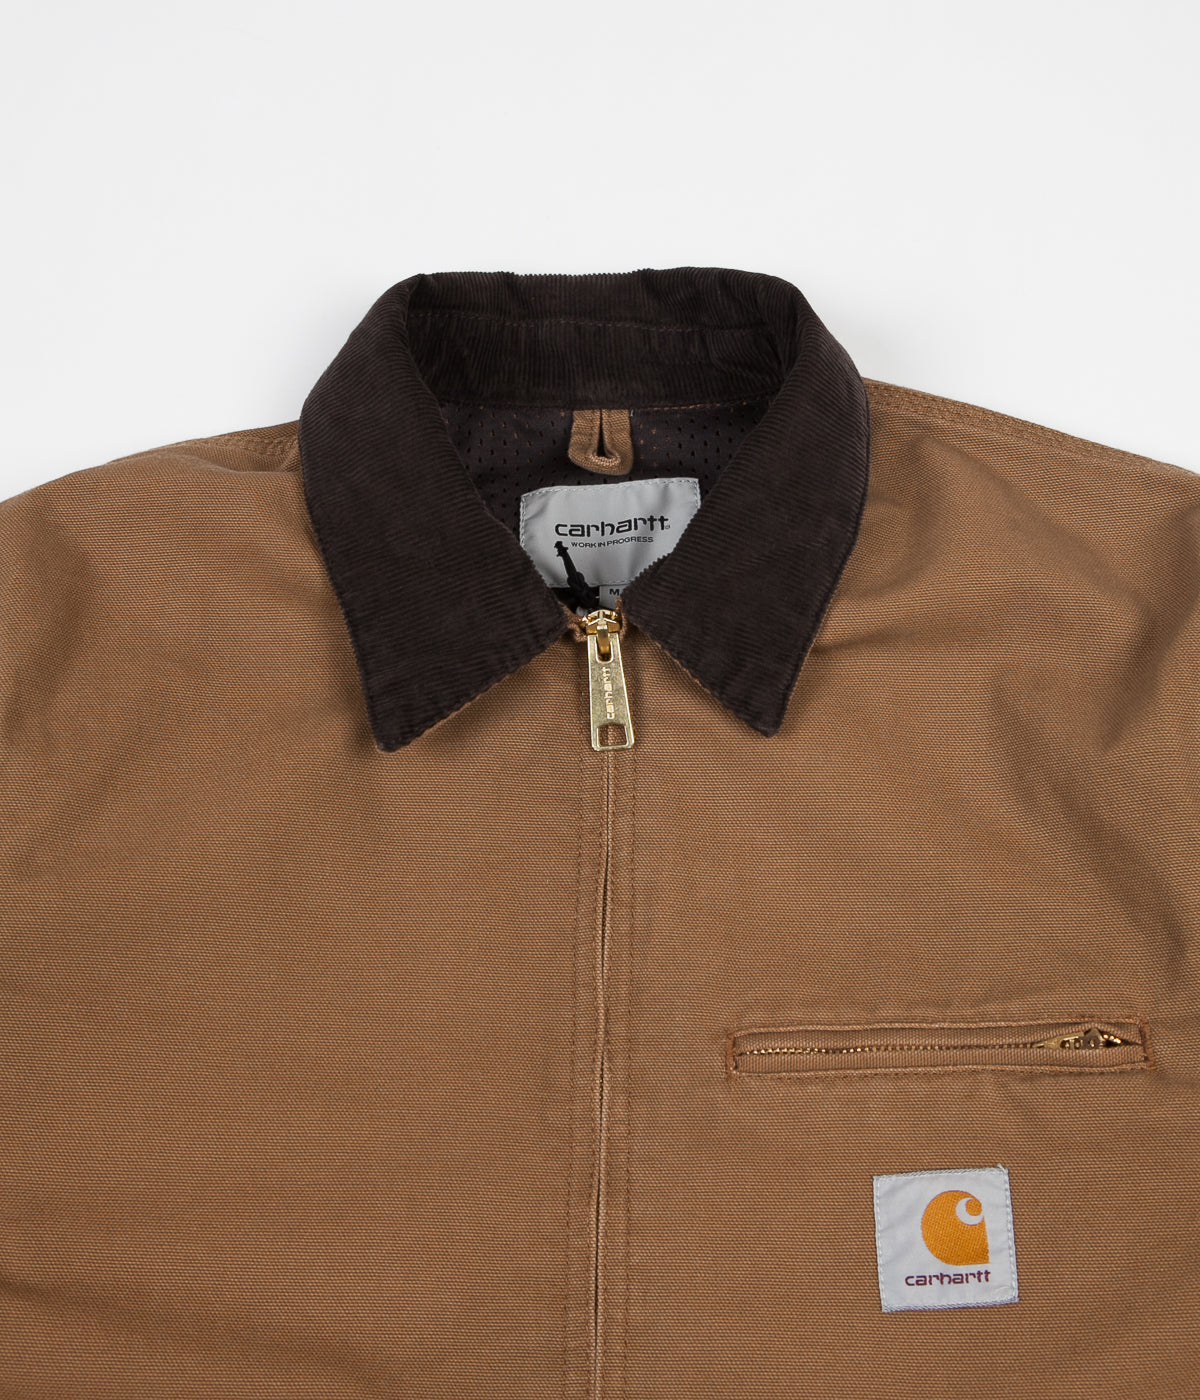 Carhartt Detroit (Summer) Jacket - Hamilton Brown